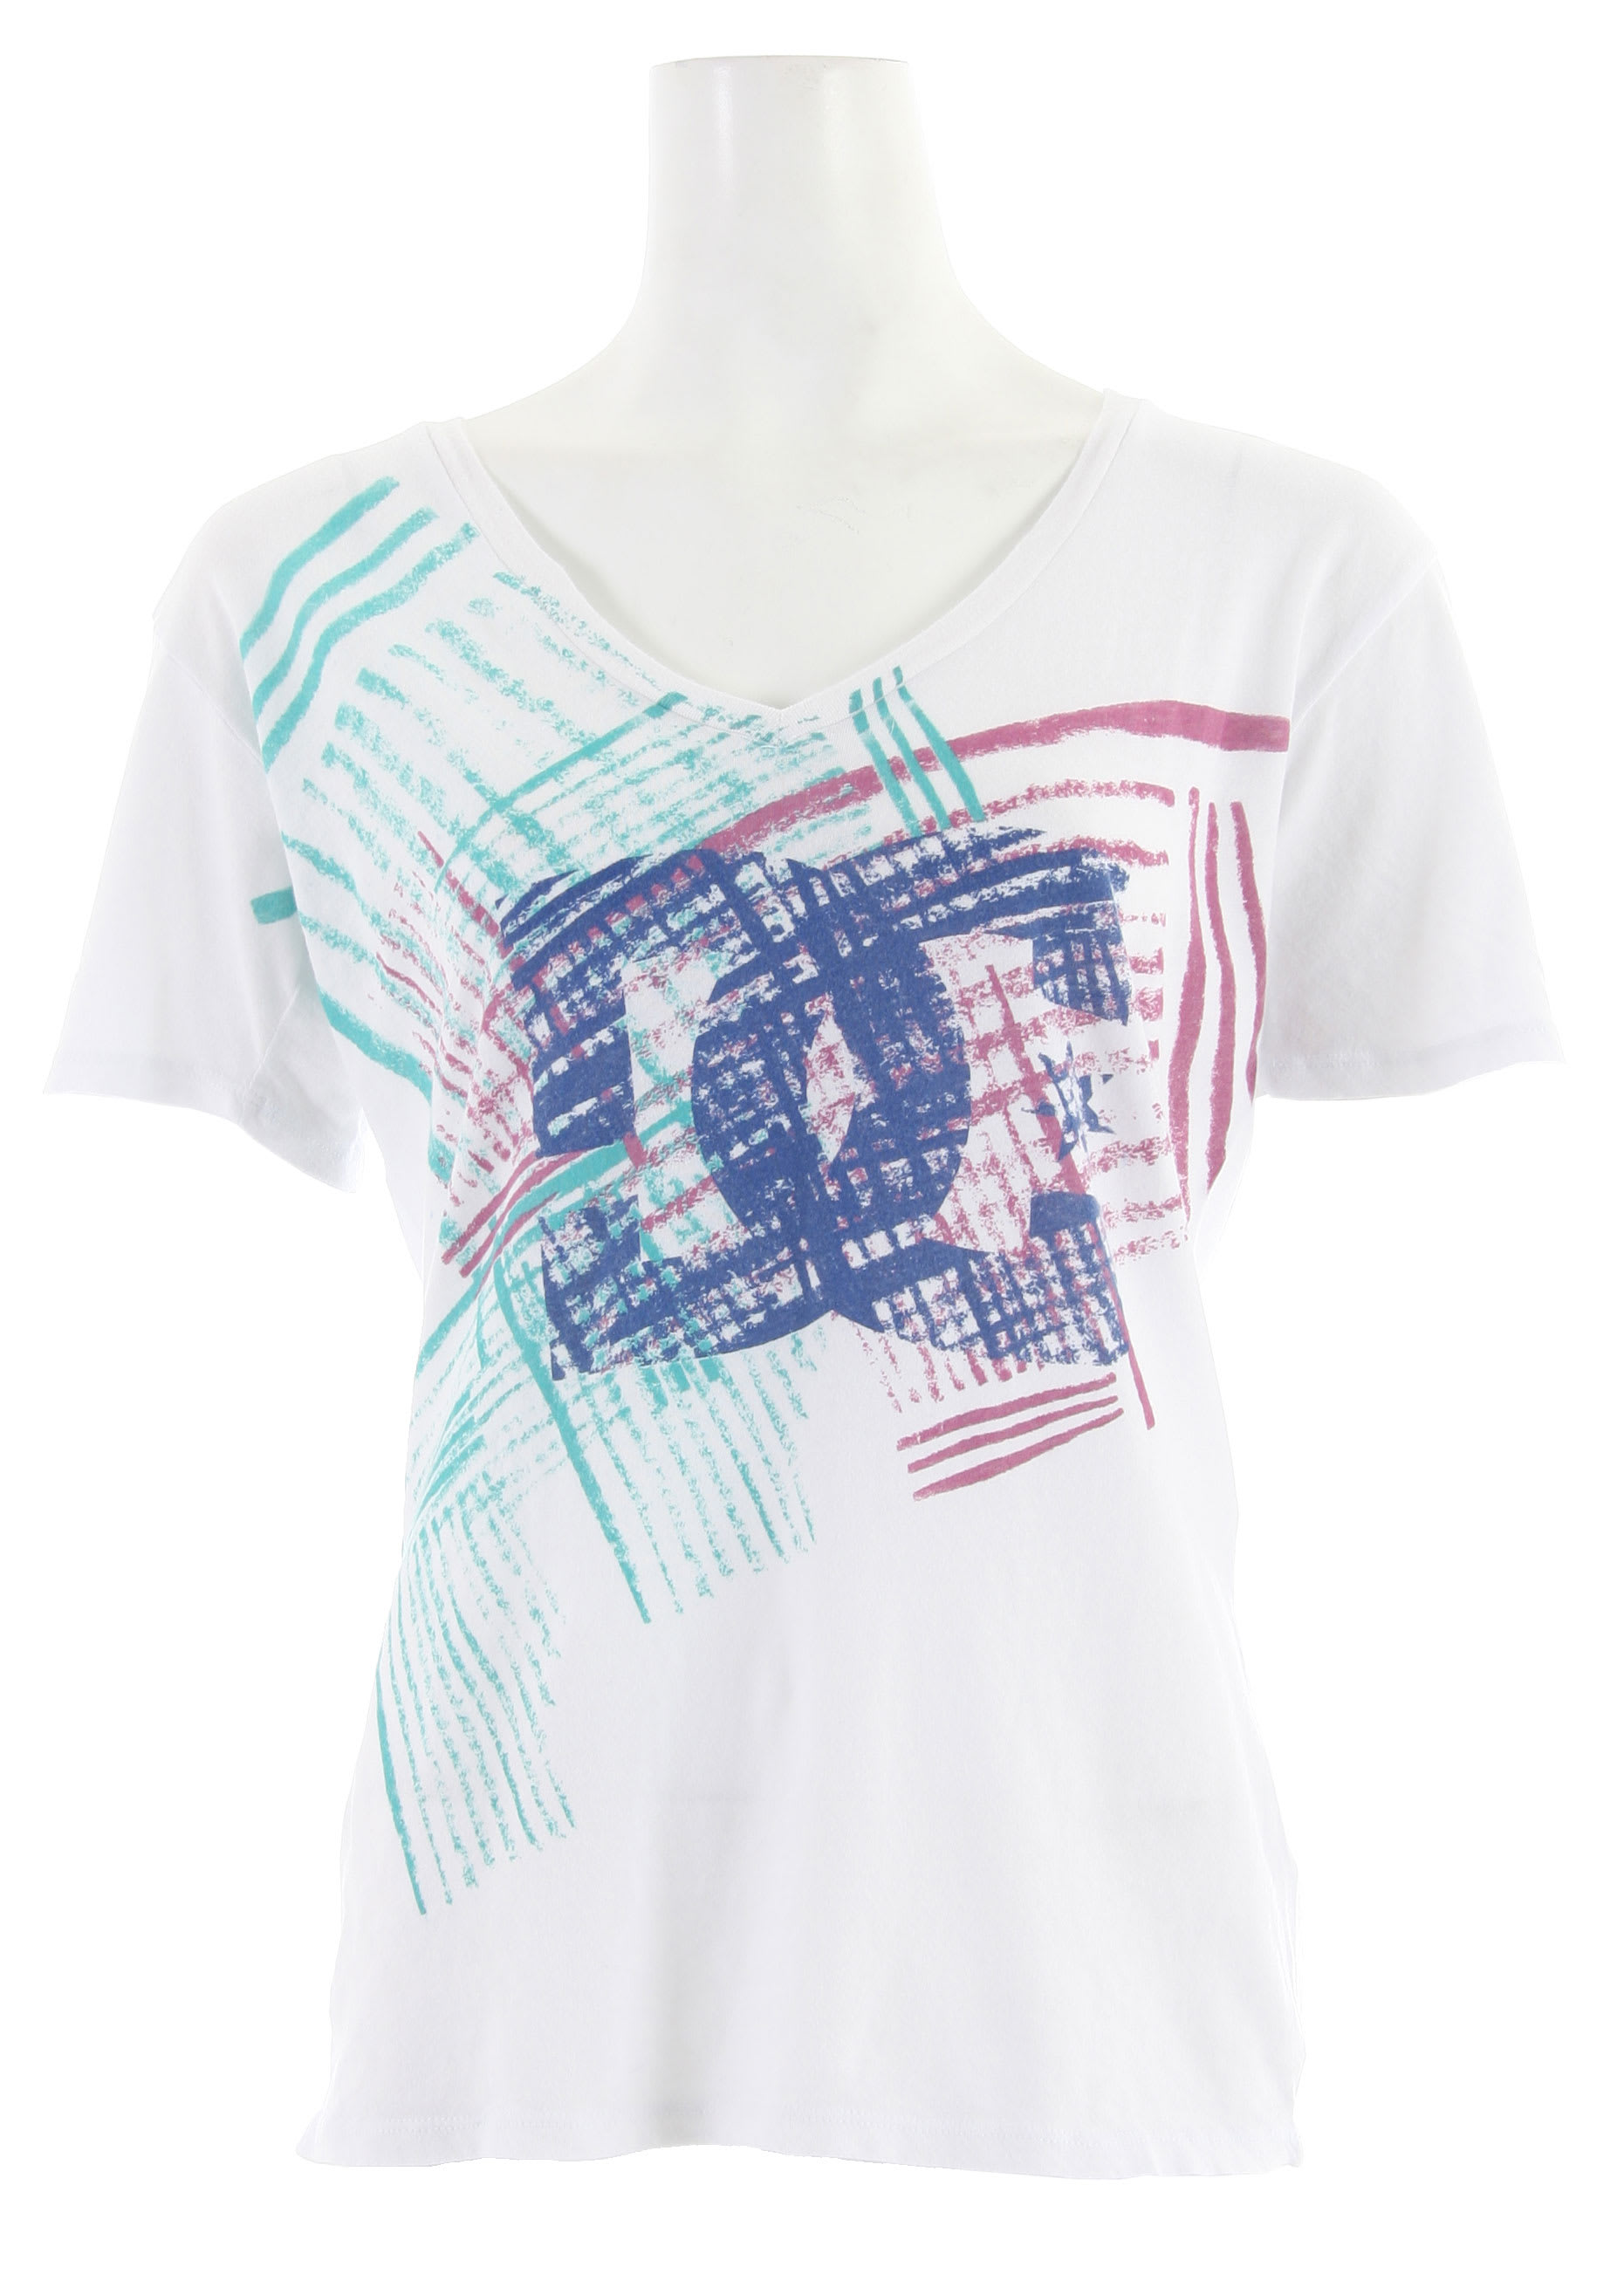 Shop for DC Diamond Eyes T-Shirt Bright White - Women's